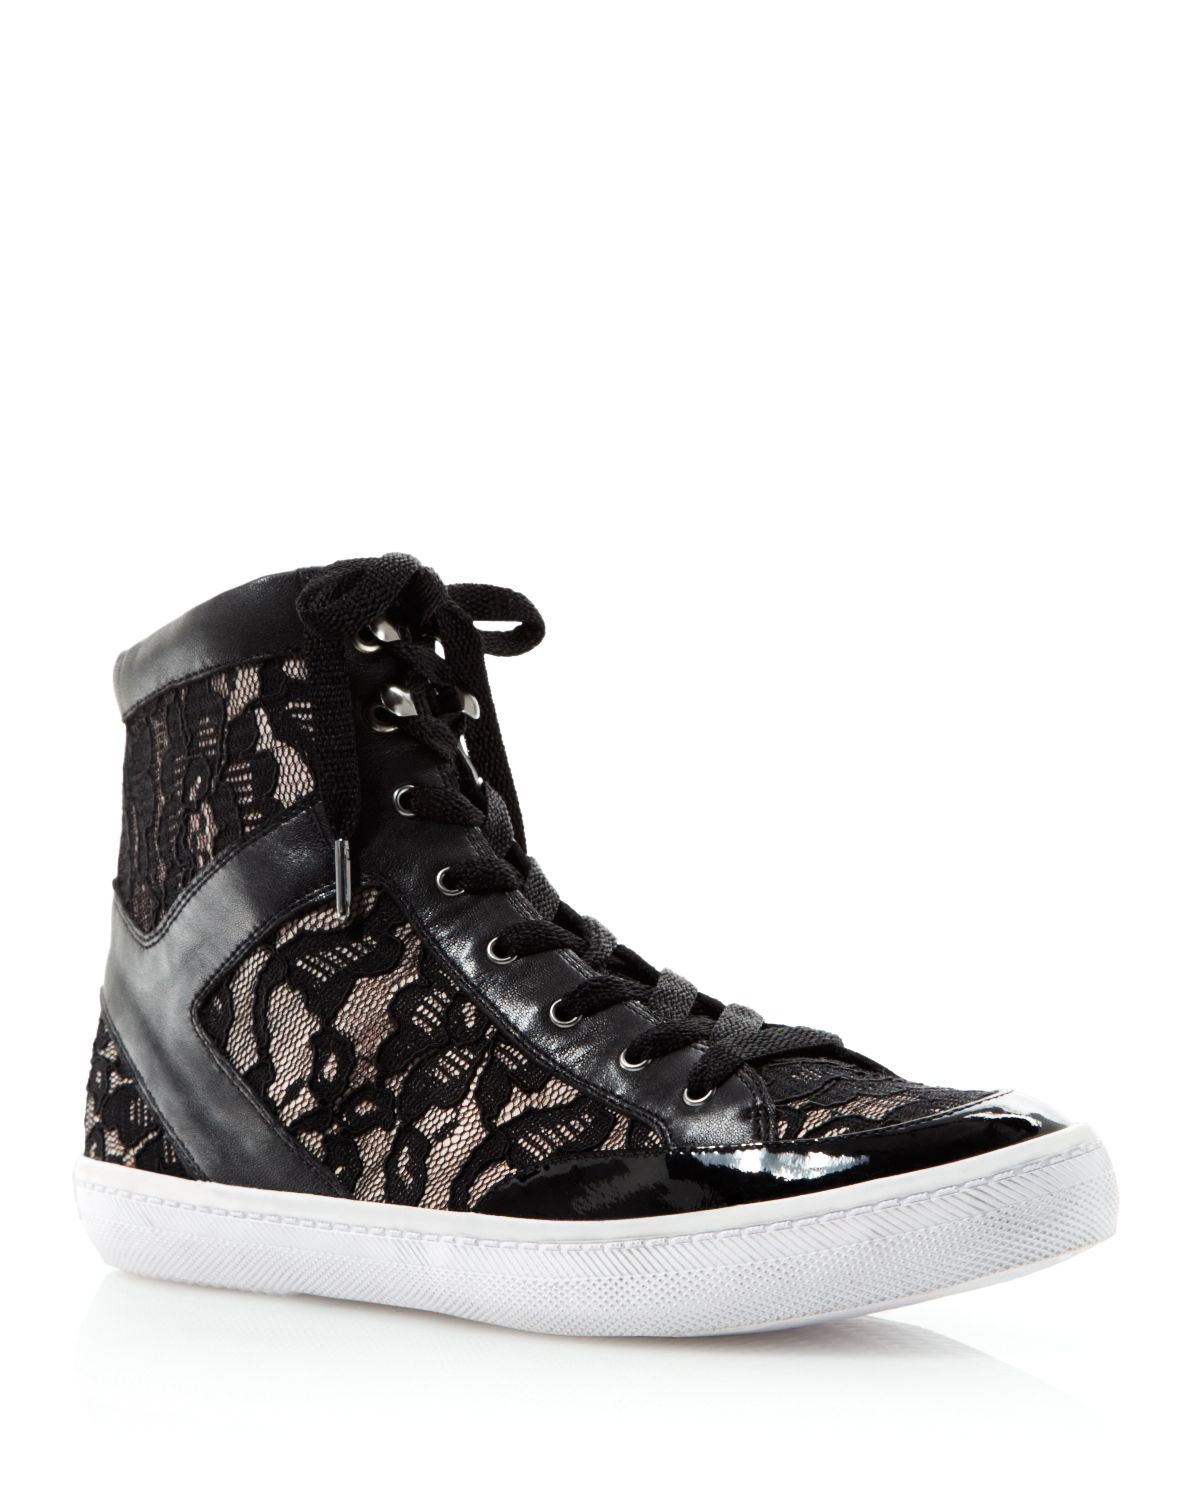 buy cheap collections clearance discounts Rebecca Minkoff Ponyhair High-Top Sneakers 204fNLwEaR